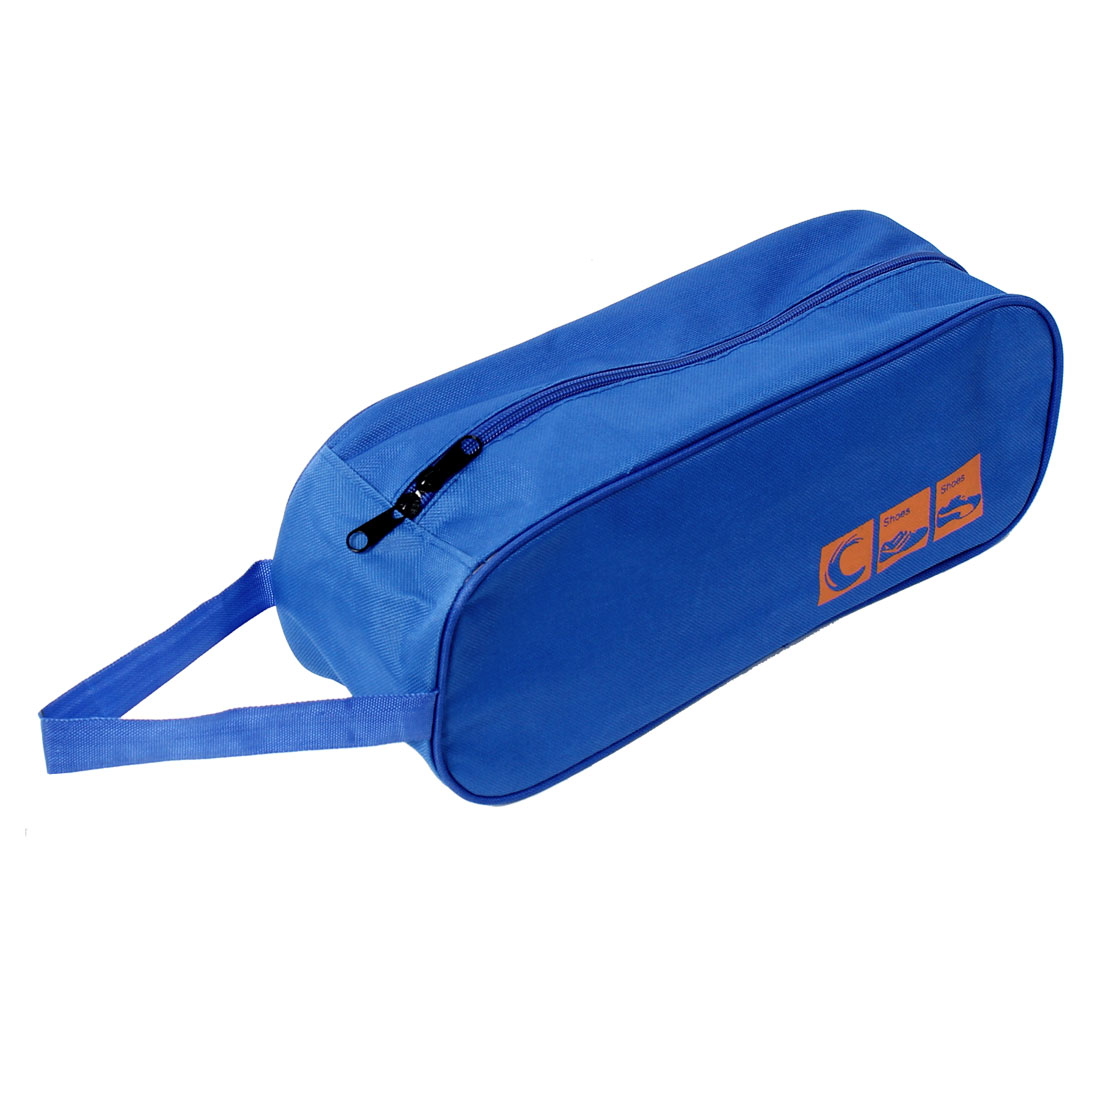 Nylon Zipper Closure Design Travel Storage Shoe Tote Dust Bag Dark Blue